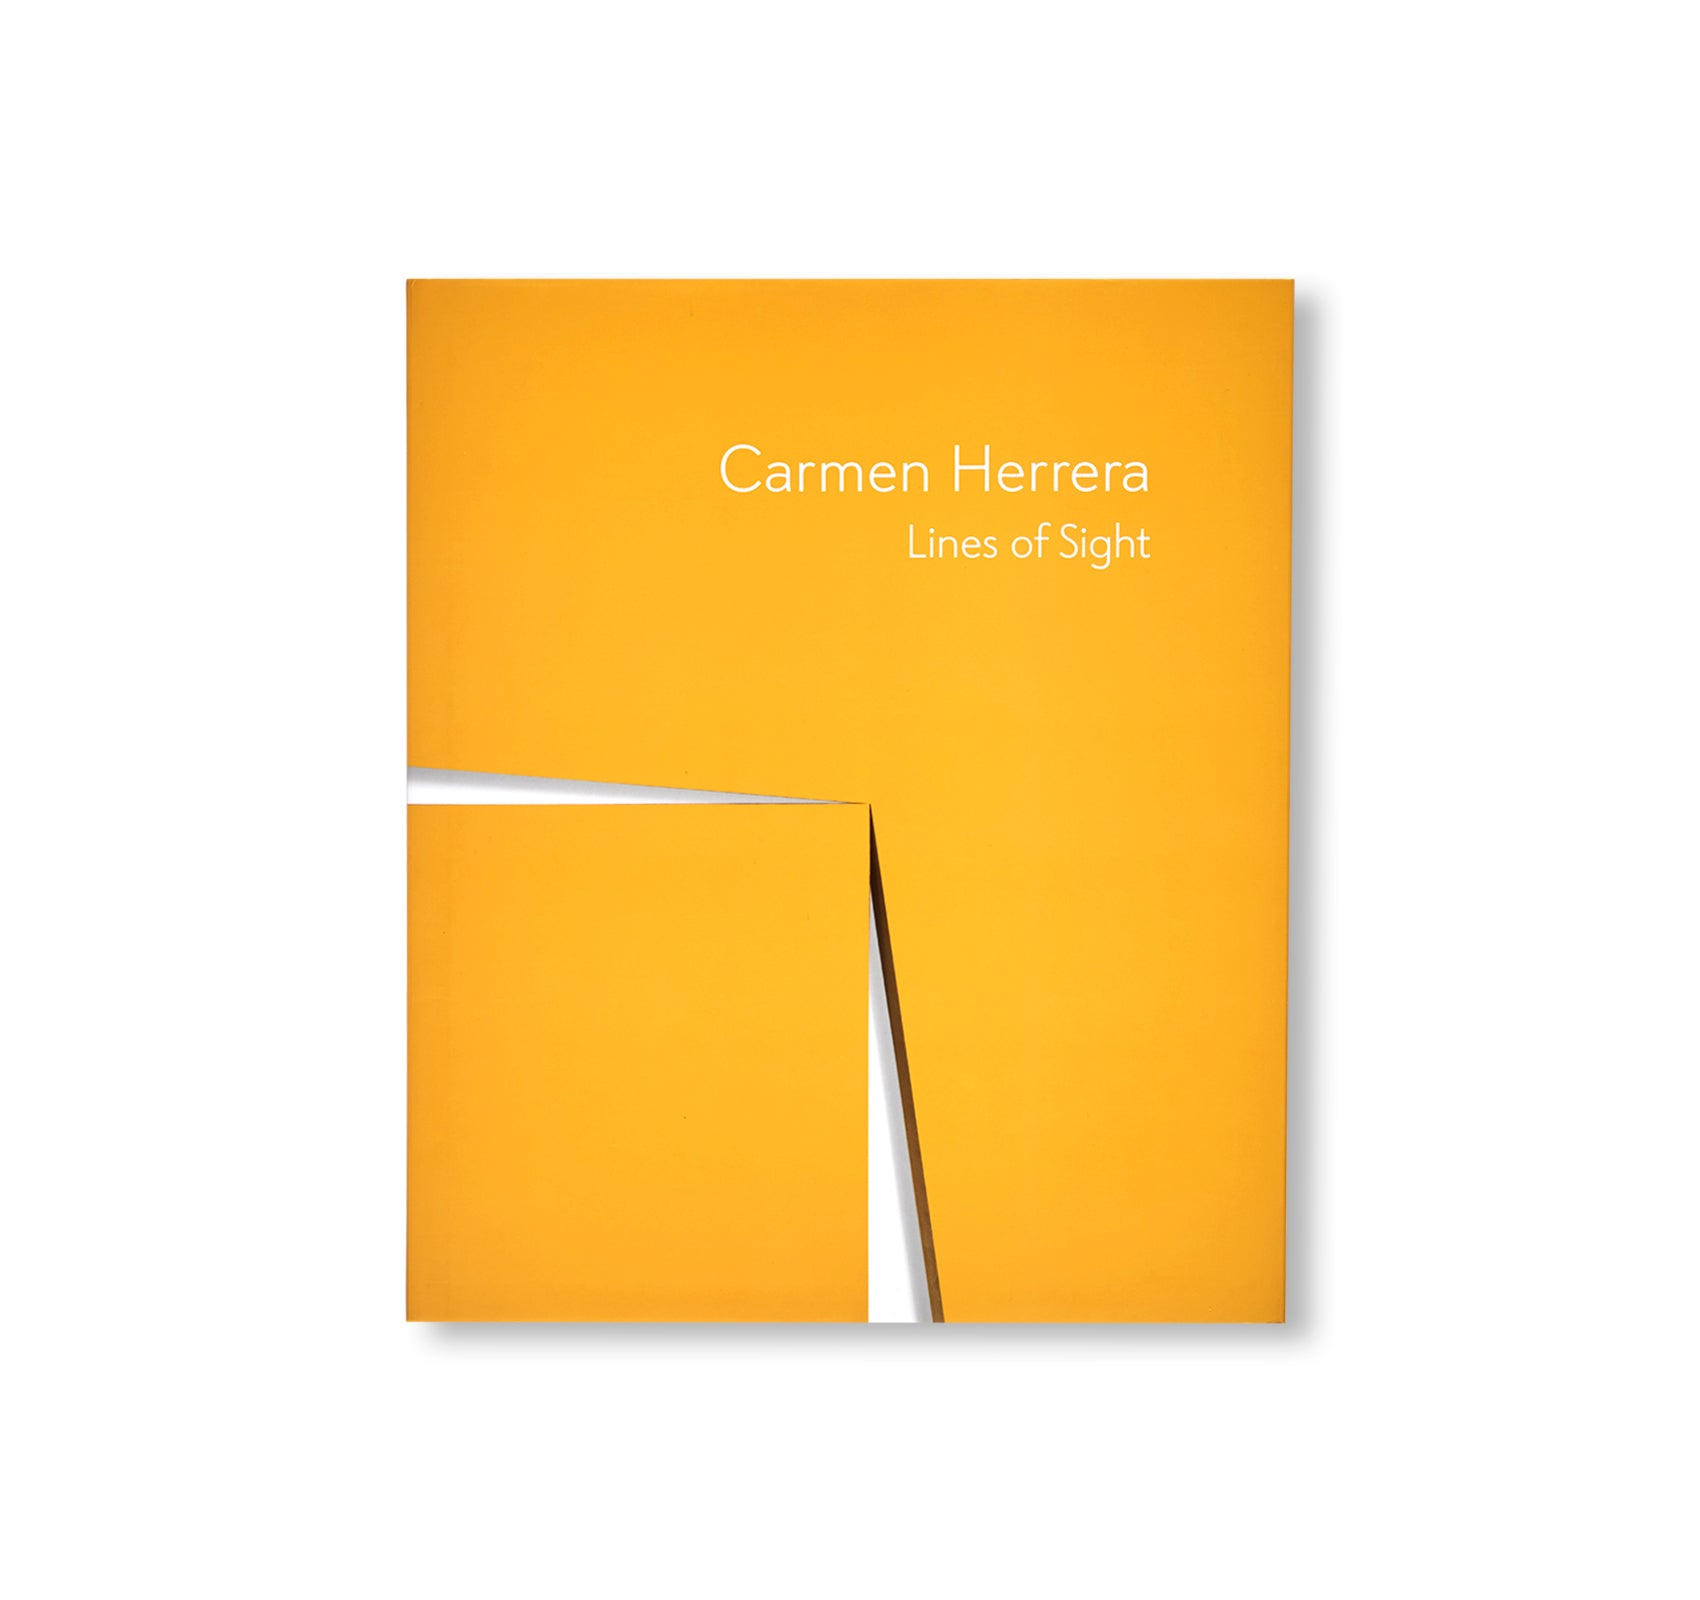 LINES OF SIGHT by Carmen Herrera